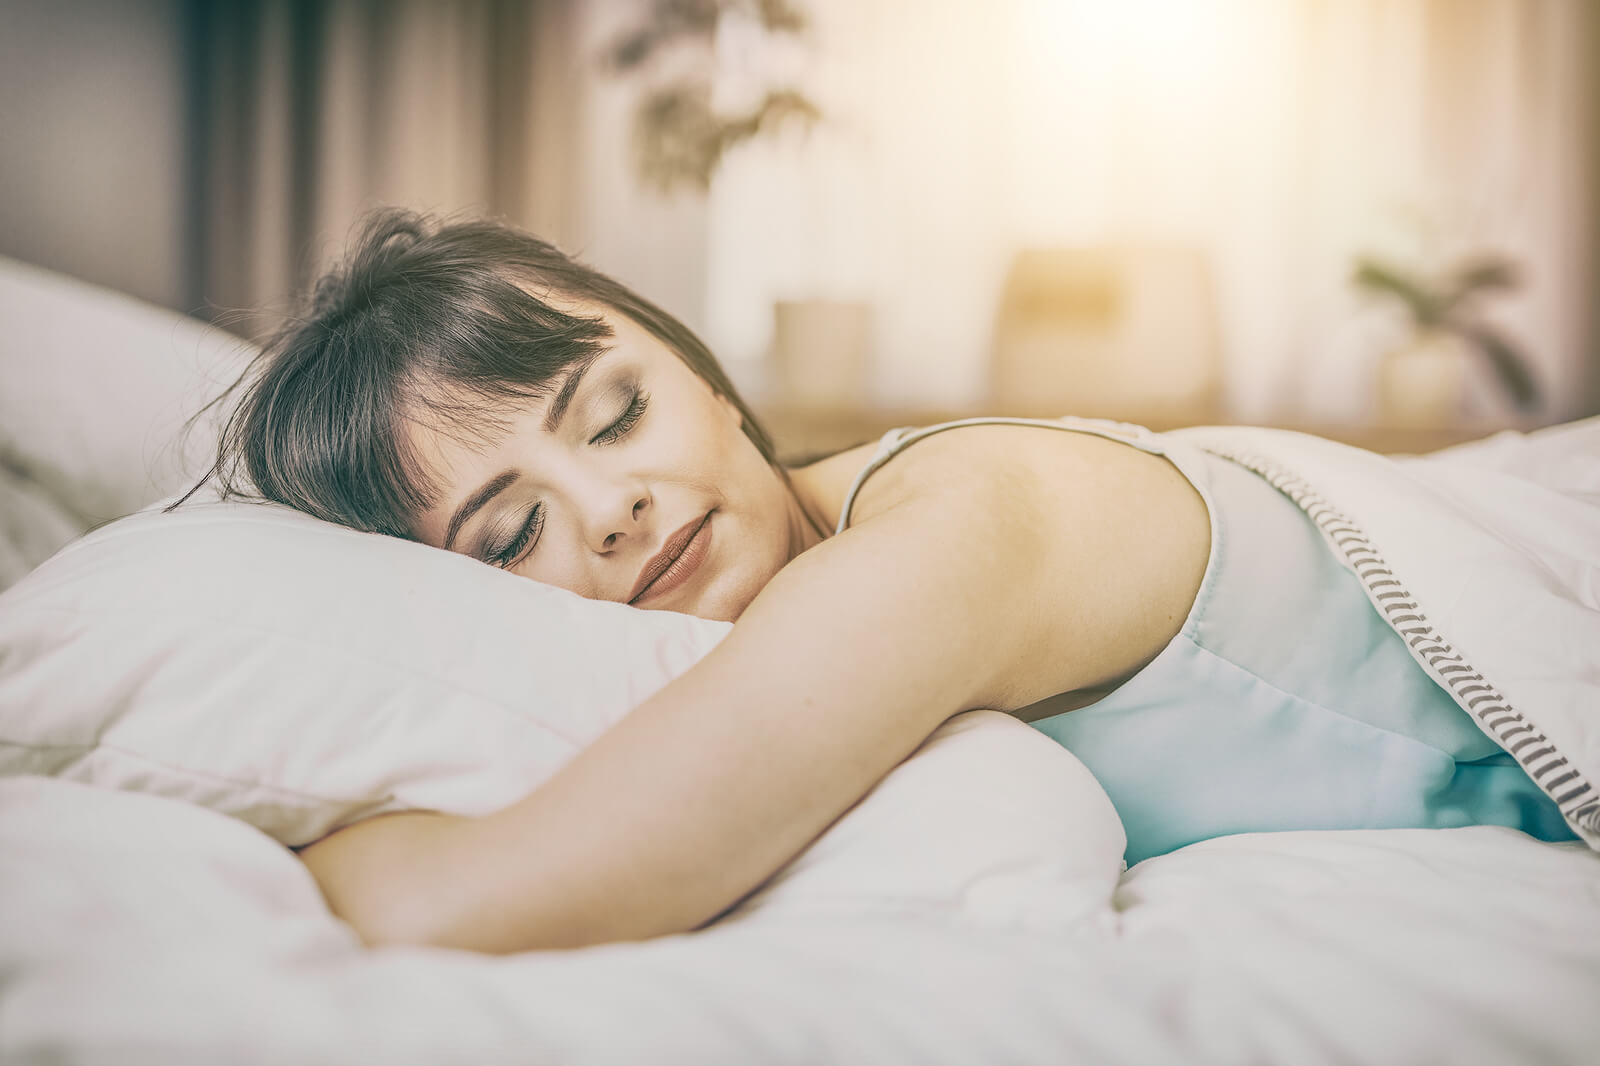 Beautiful young woman sleeping on a bed in the bedroom in a peaceful sleep